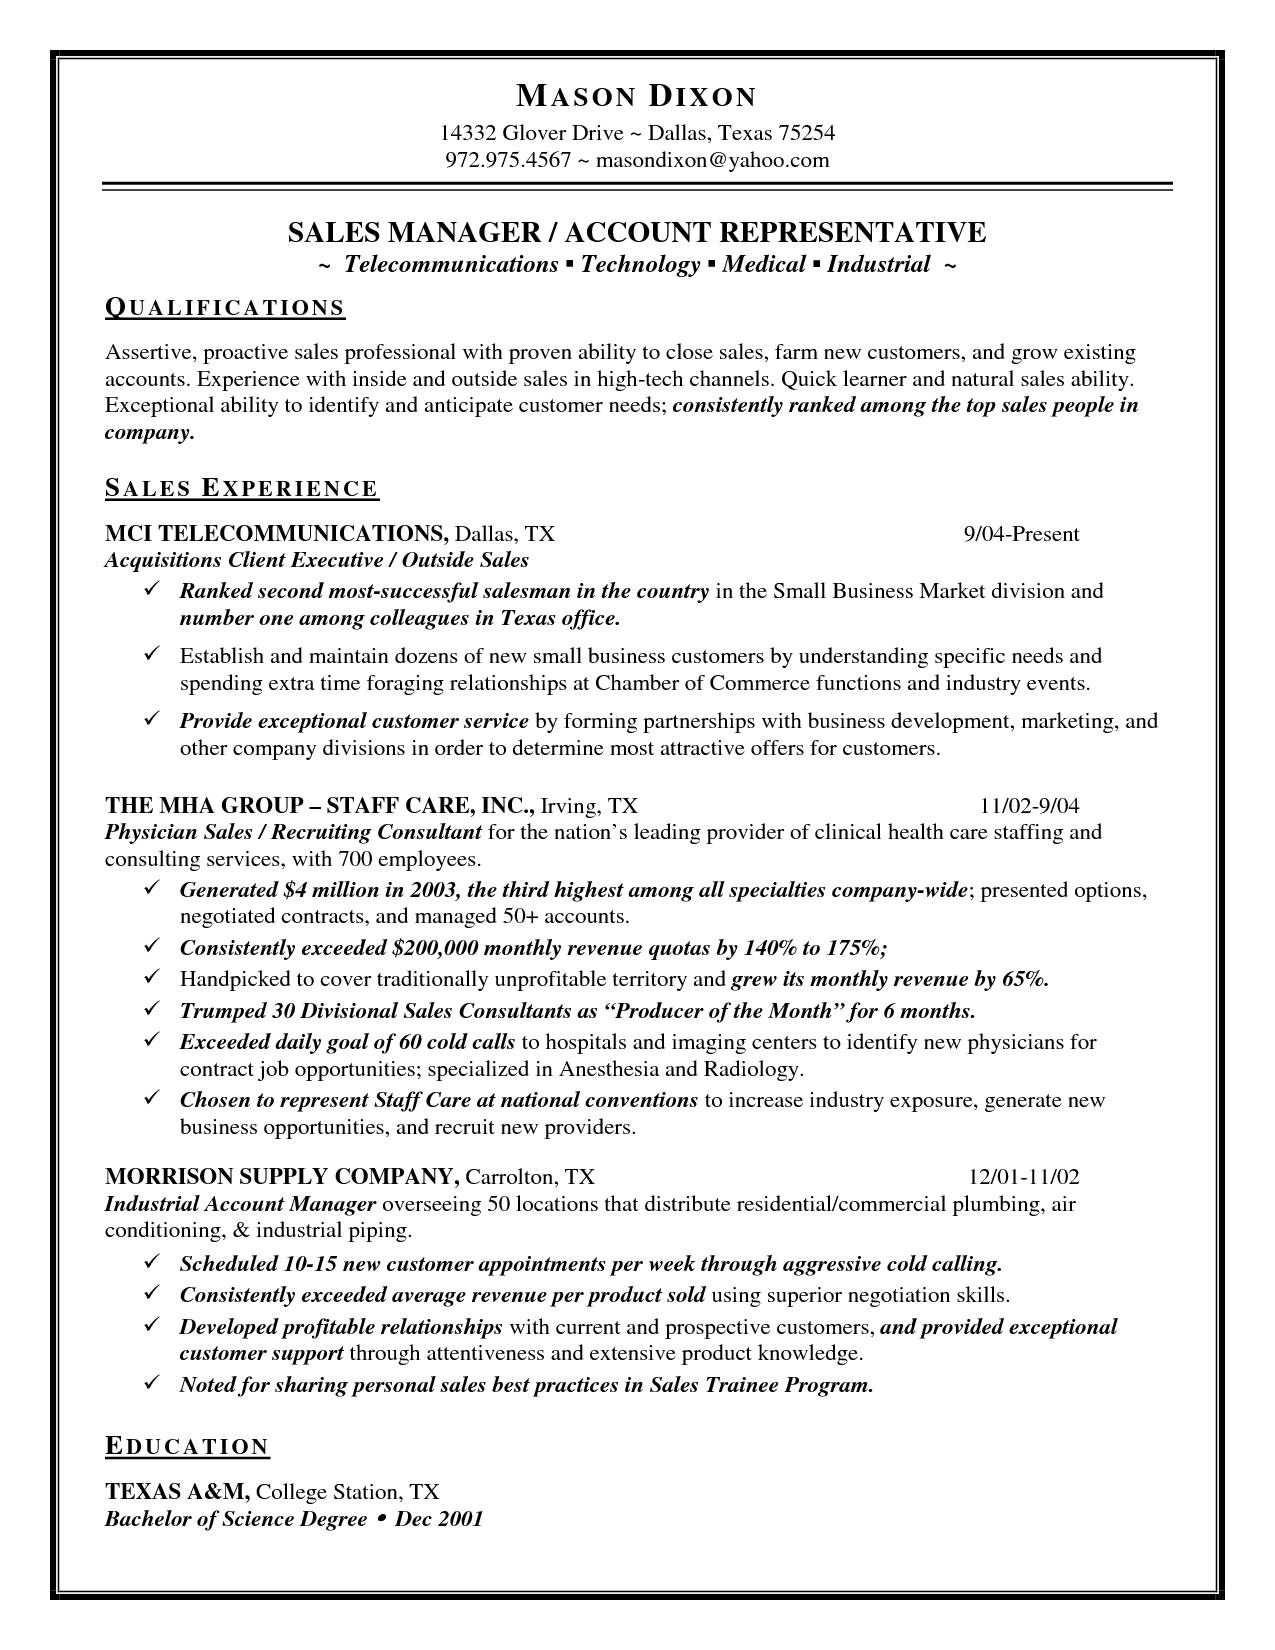 resume quick learner